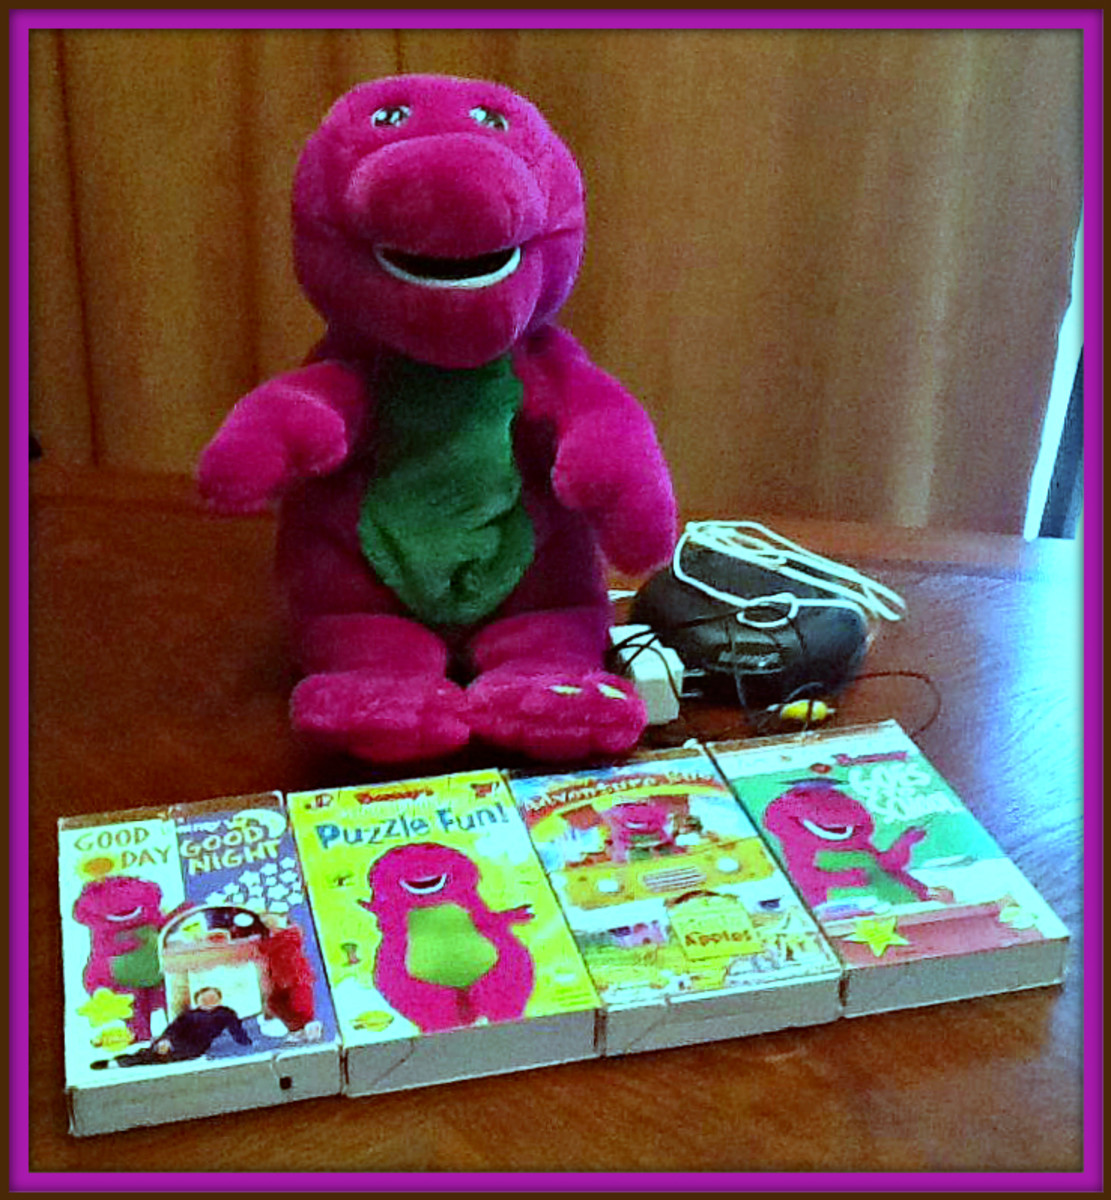 The first is the talking and moving plush ActiMates Interactive plush Barney companion. The next is a TV Pack which is equipped with a RF transmitter that plugs into the VCR and operates specially encoded Barney VHS videotape.